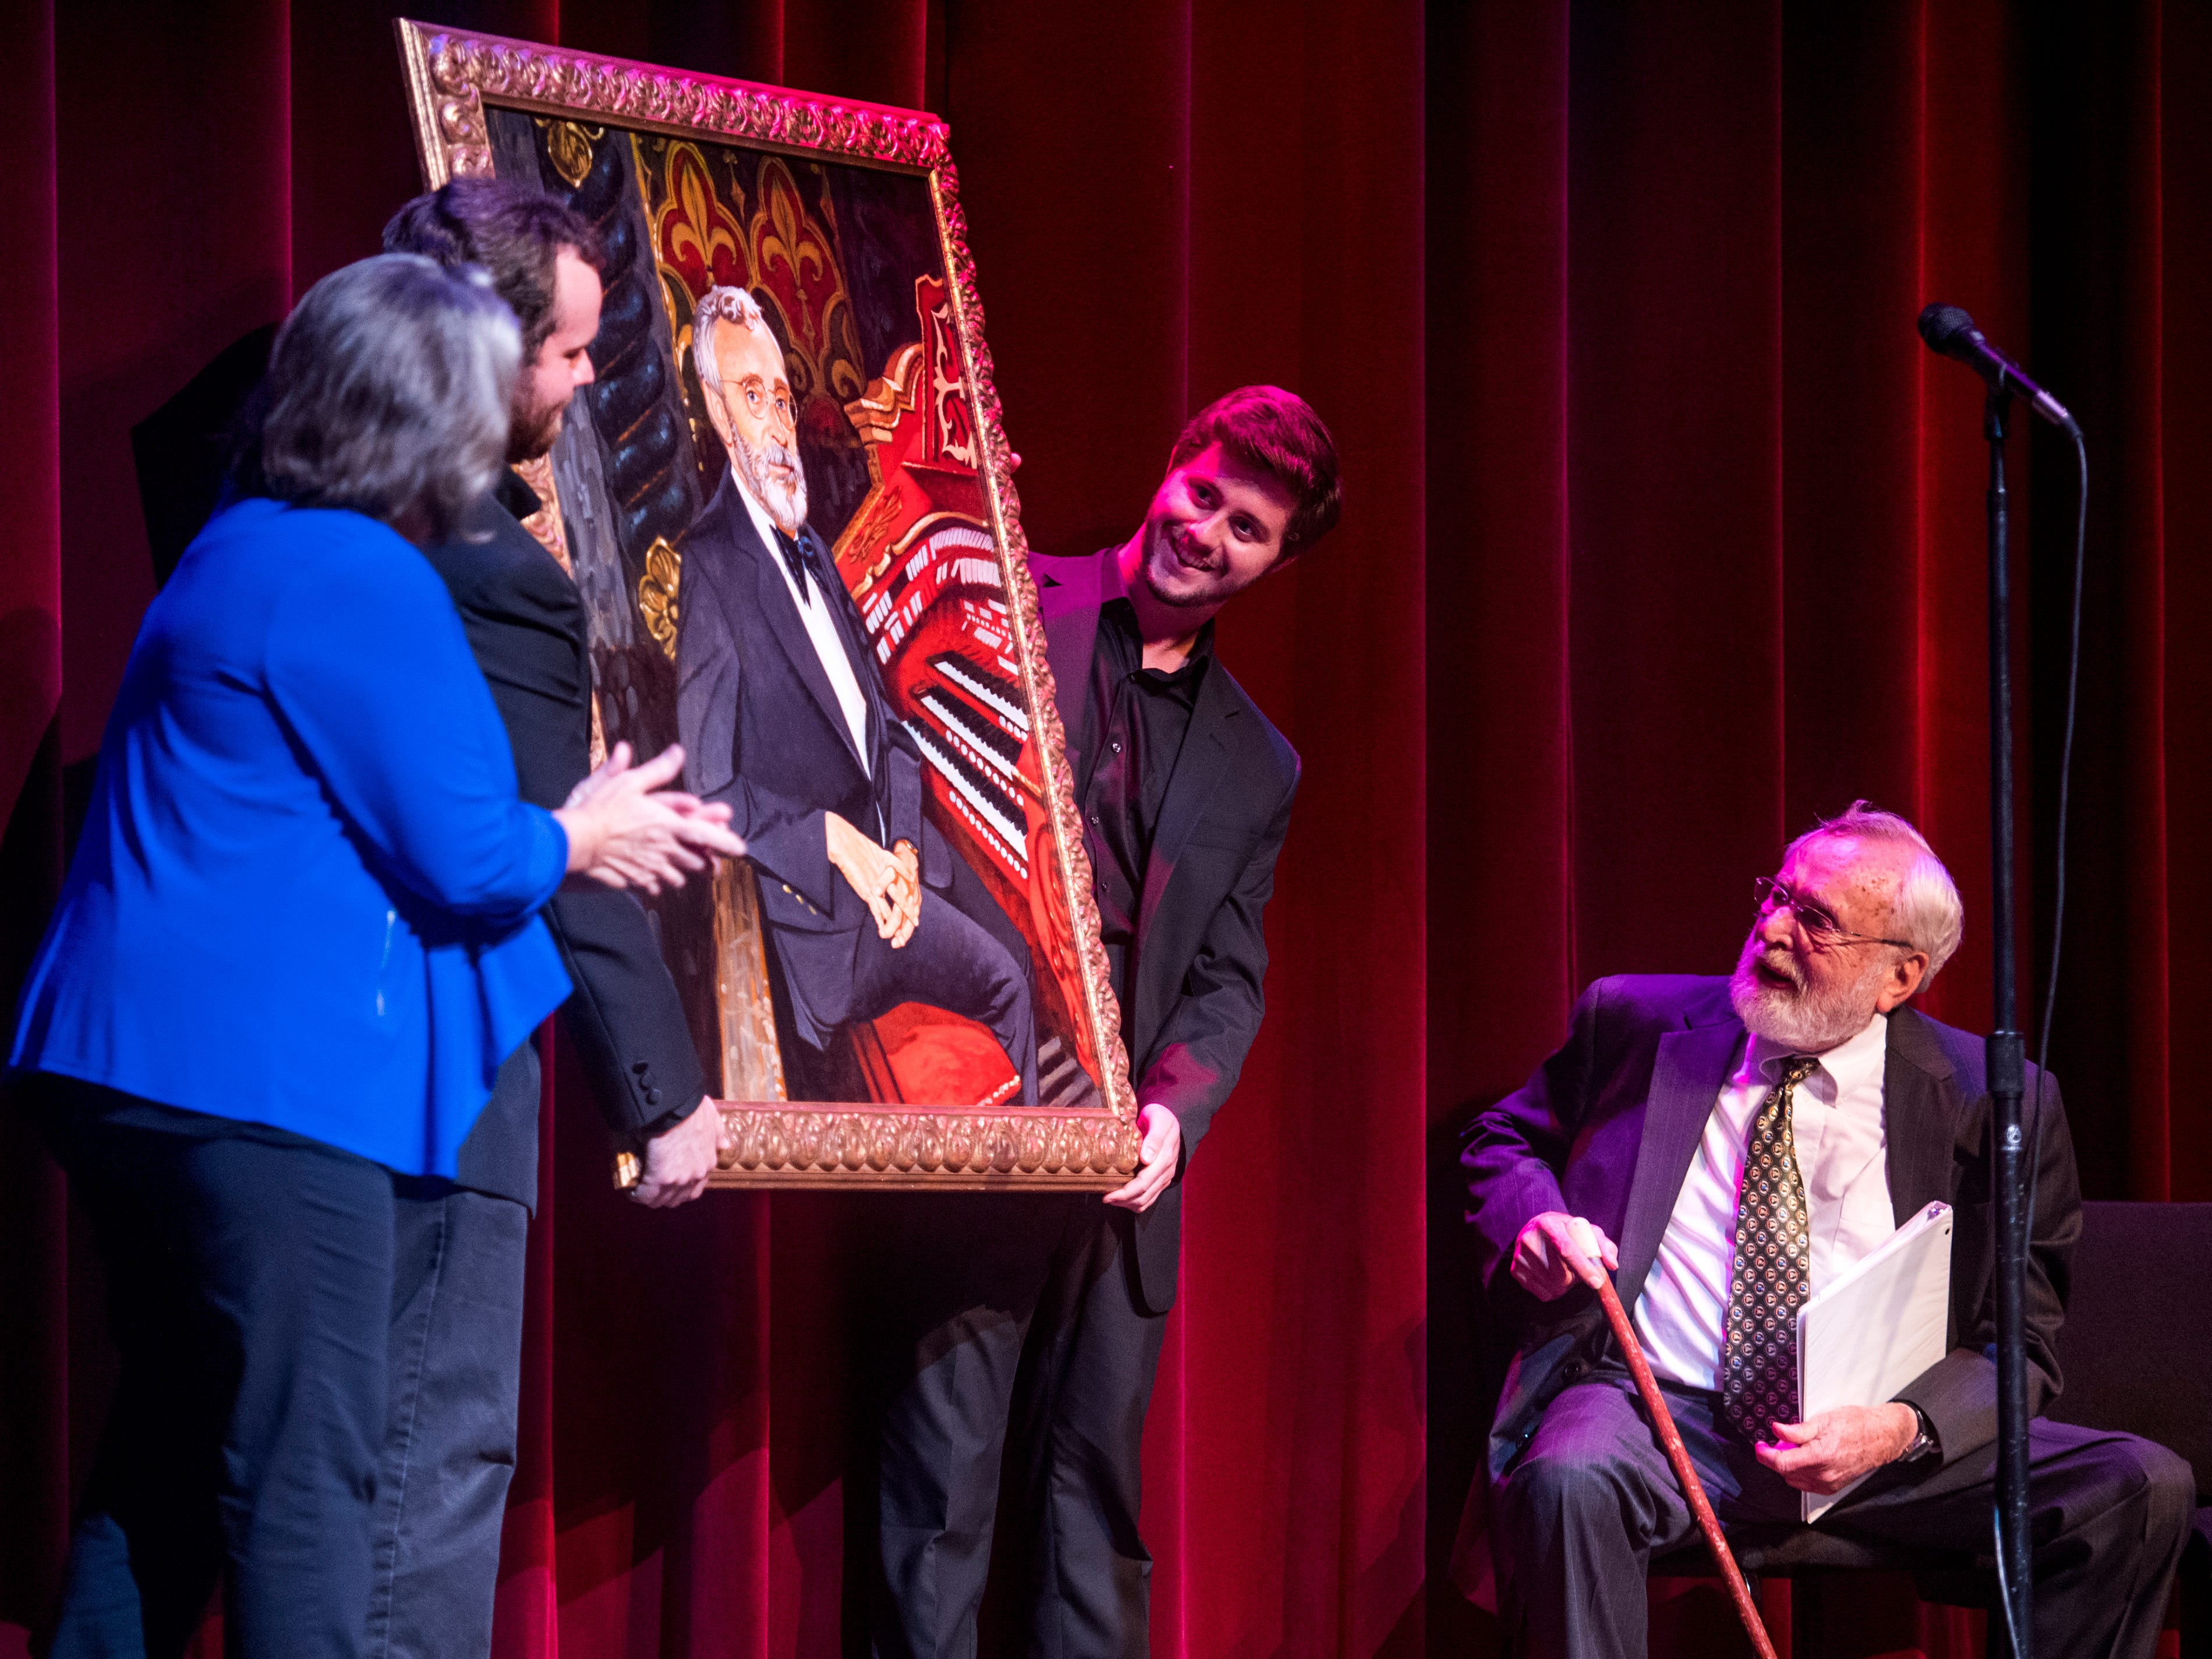 A painted portrait of Dr. Bill Snyder that will be hung in the Tennessee Theatre is unveiled during a special Mighty Musical Monday celebrating Dr. Bill Snyder's retirement at the downtown Knoxville theatre on Monday, October 1, 2018. Snyder has been the organist at the theater since 1979. This particular Mighty Musical Monday also landed on the Tennessee Theatre's 90th anniversary.